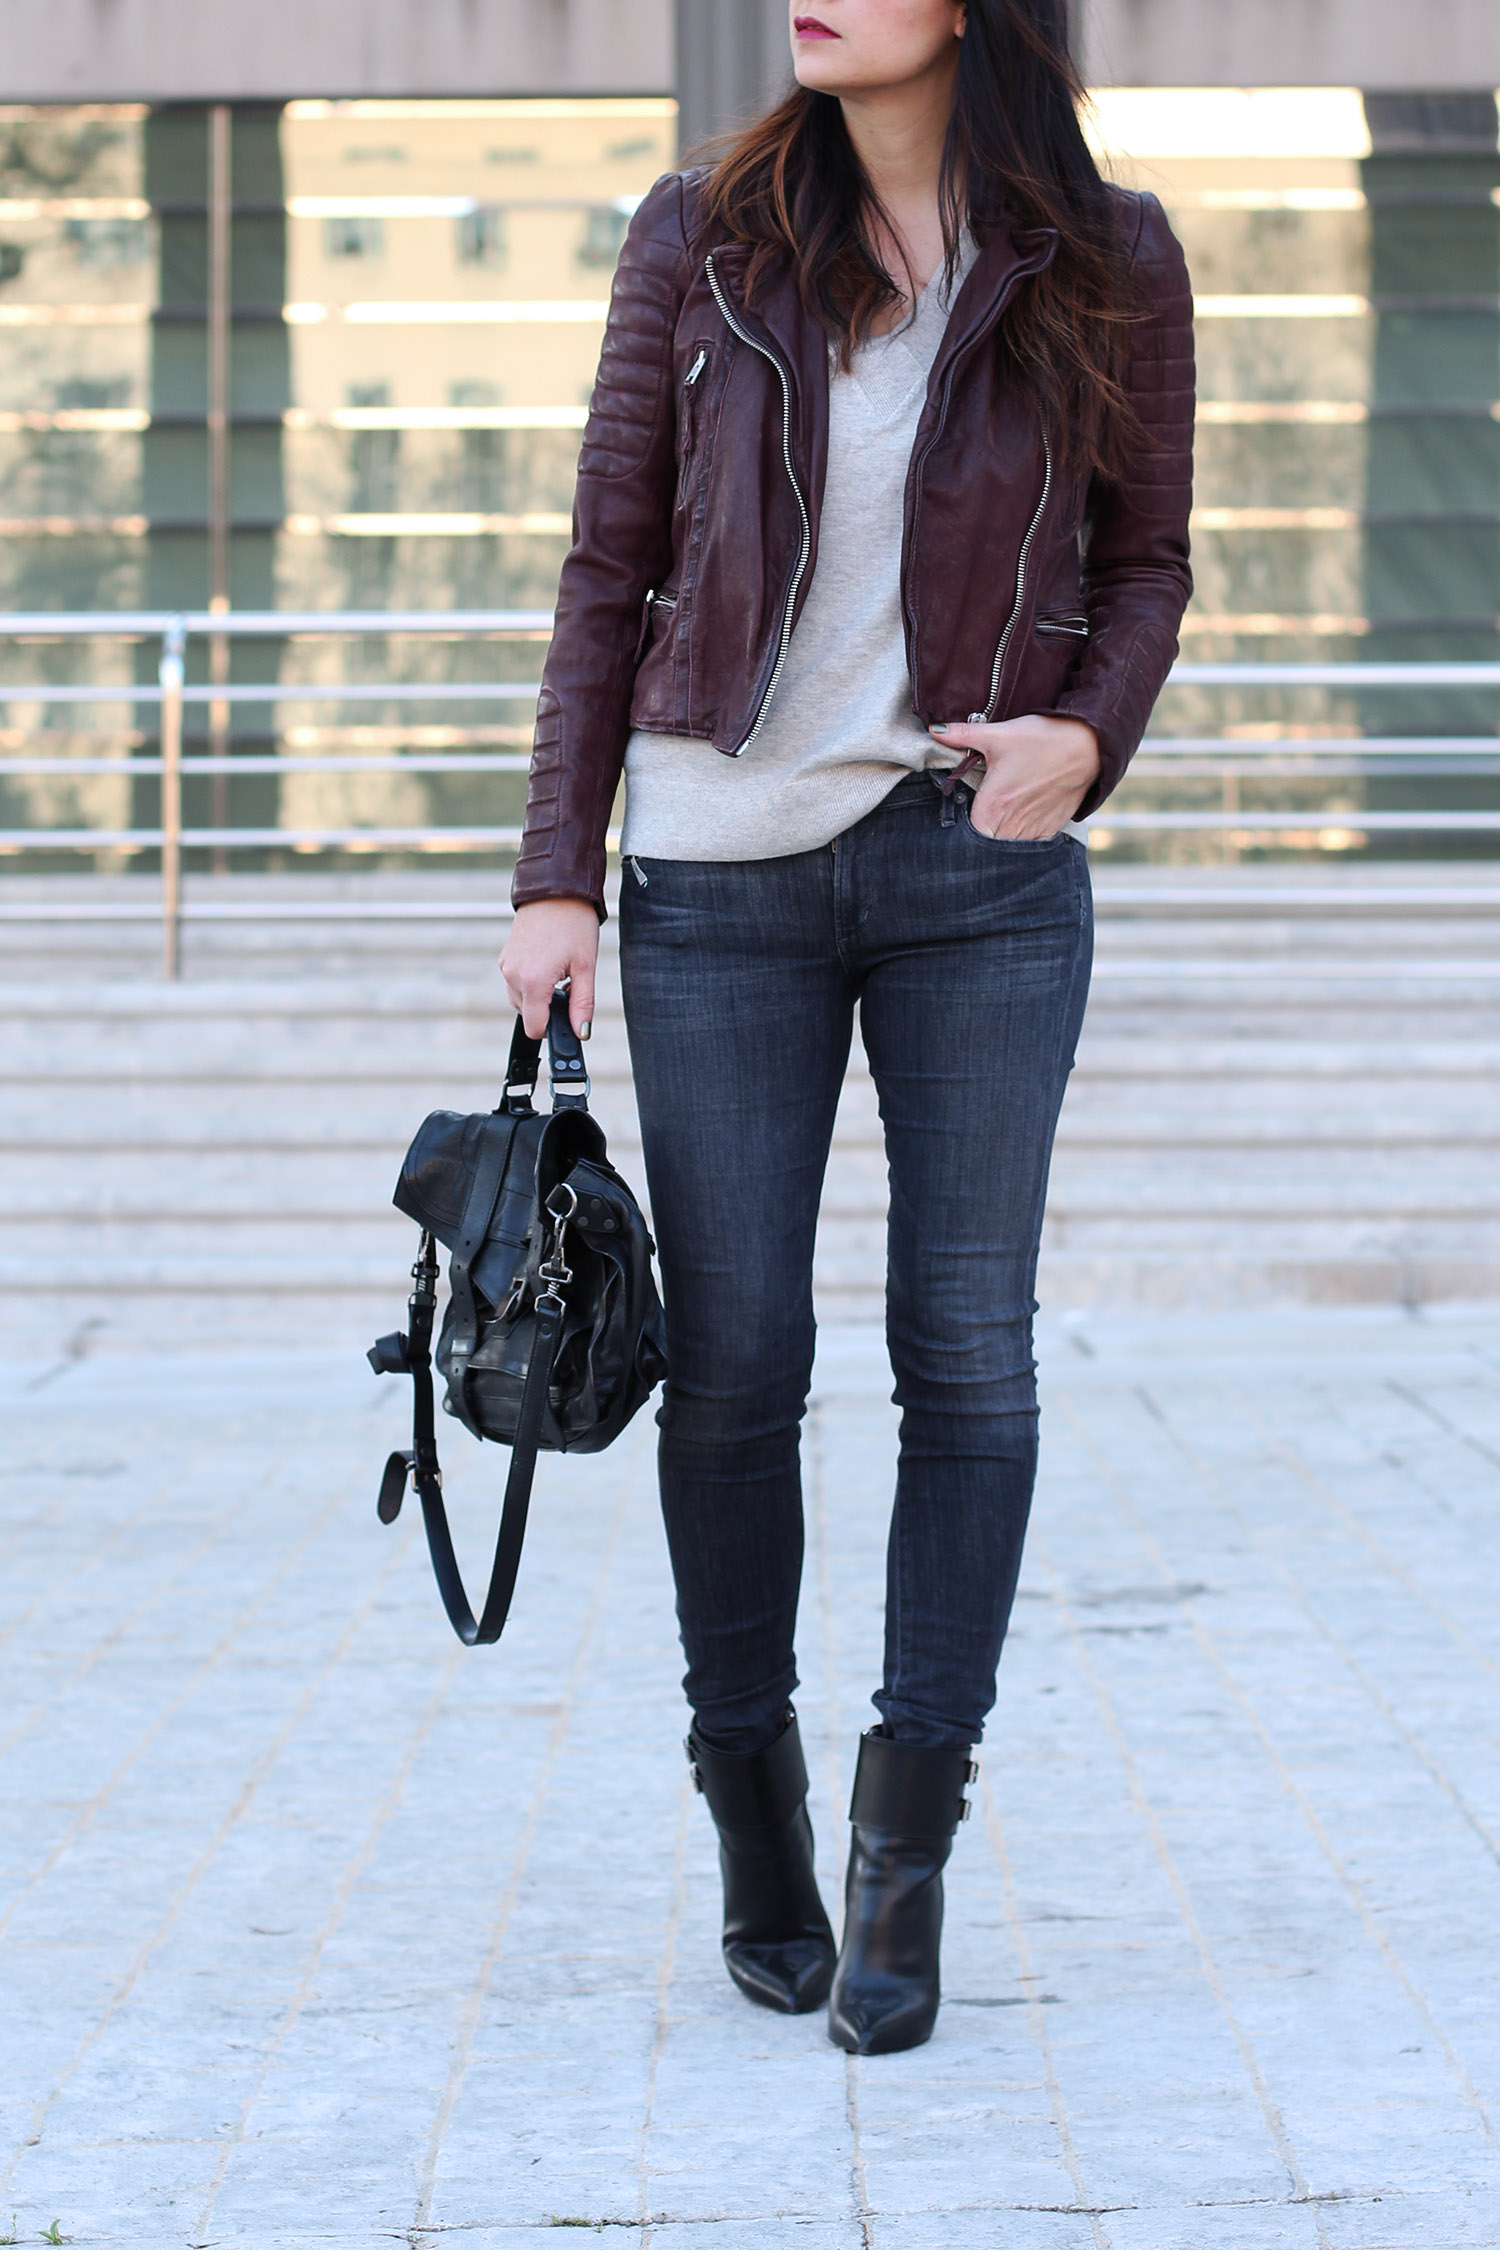 Burgundy Moto Jacket, Citizens for Humanity Jeans